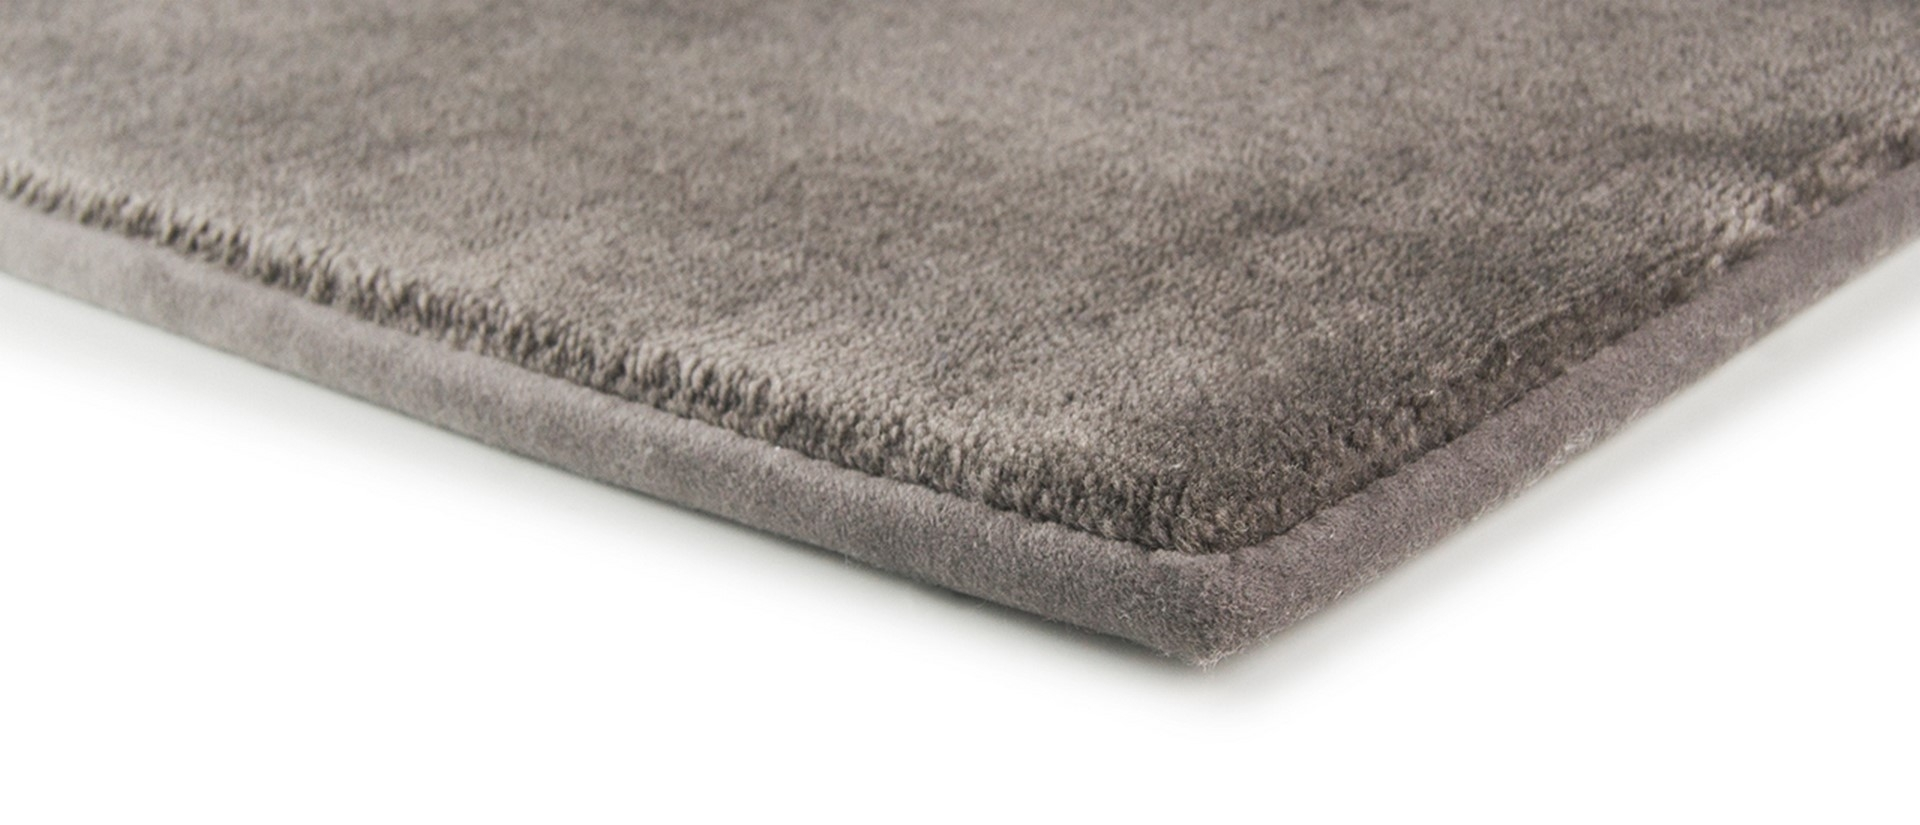 Large Rugs Itc For Large Wool Rugs (View 8 of 15)